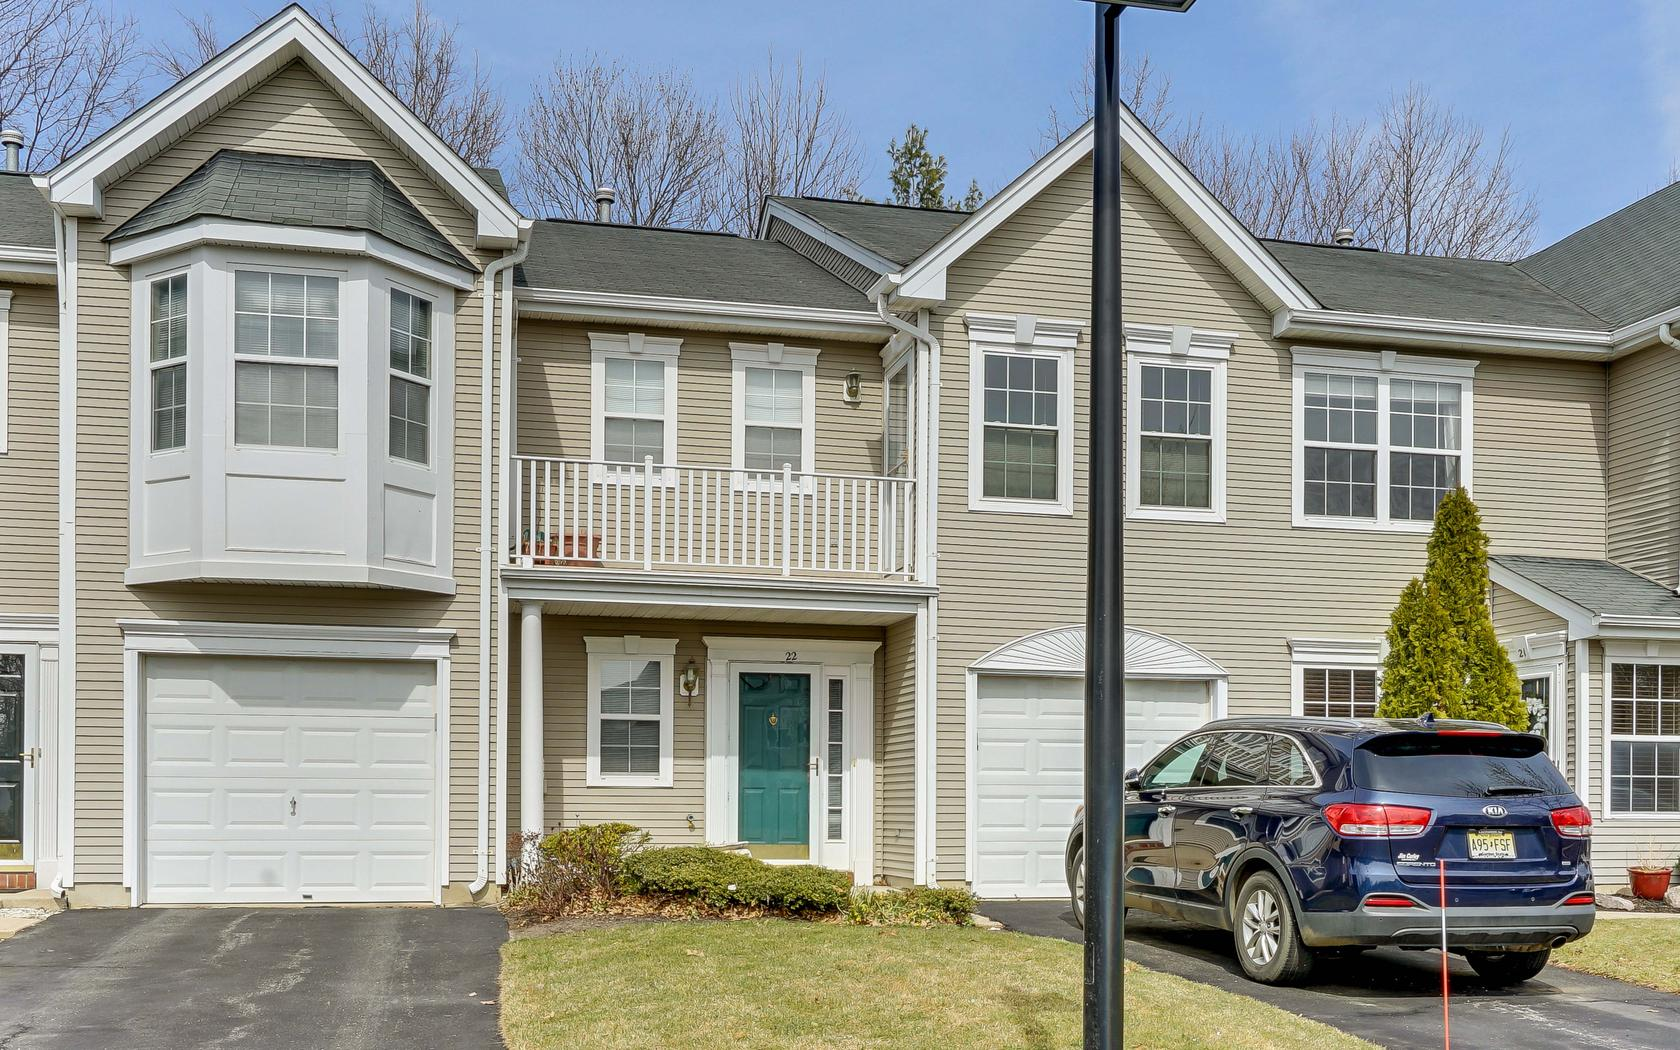 Casa Unifamiliar por un Venta en Country Village 22 Picket Place 1000 Howell, Nueva Jersey 07728 Estados Unidos